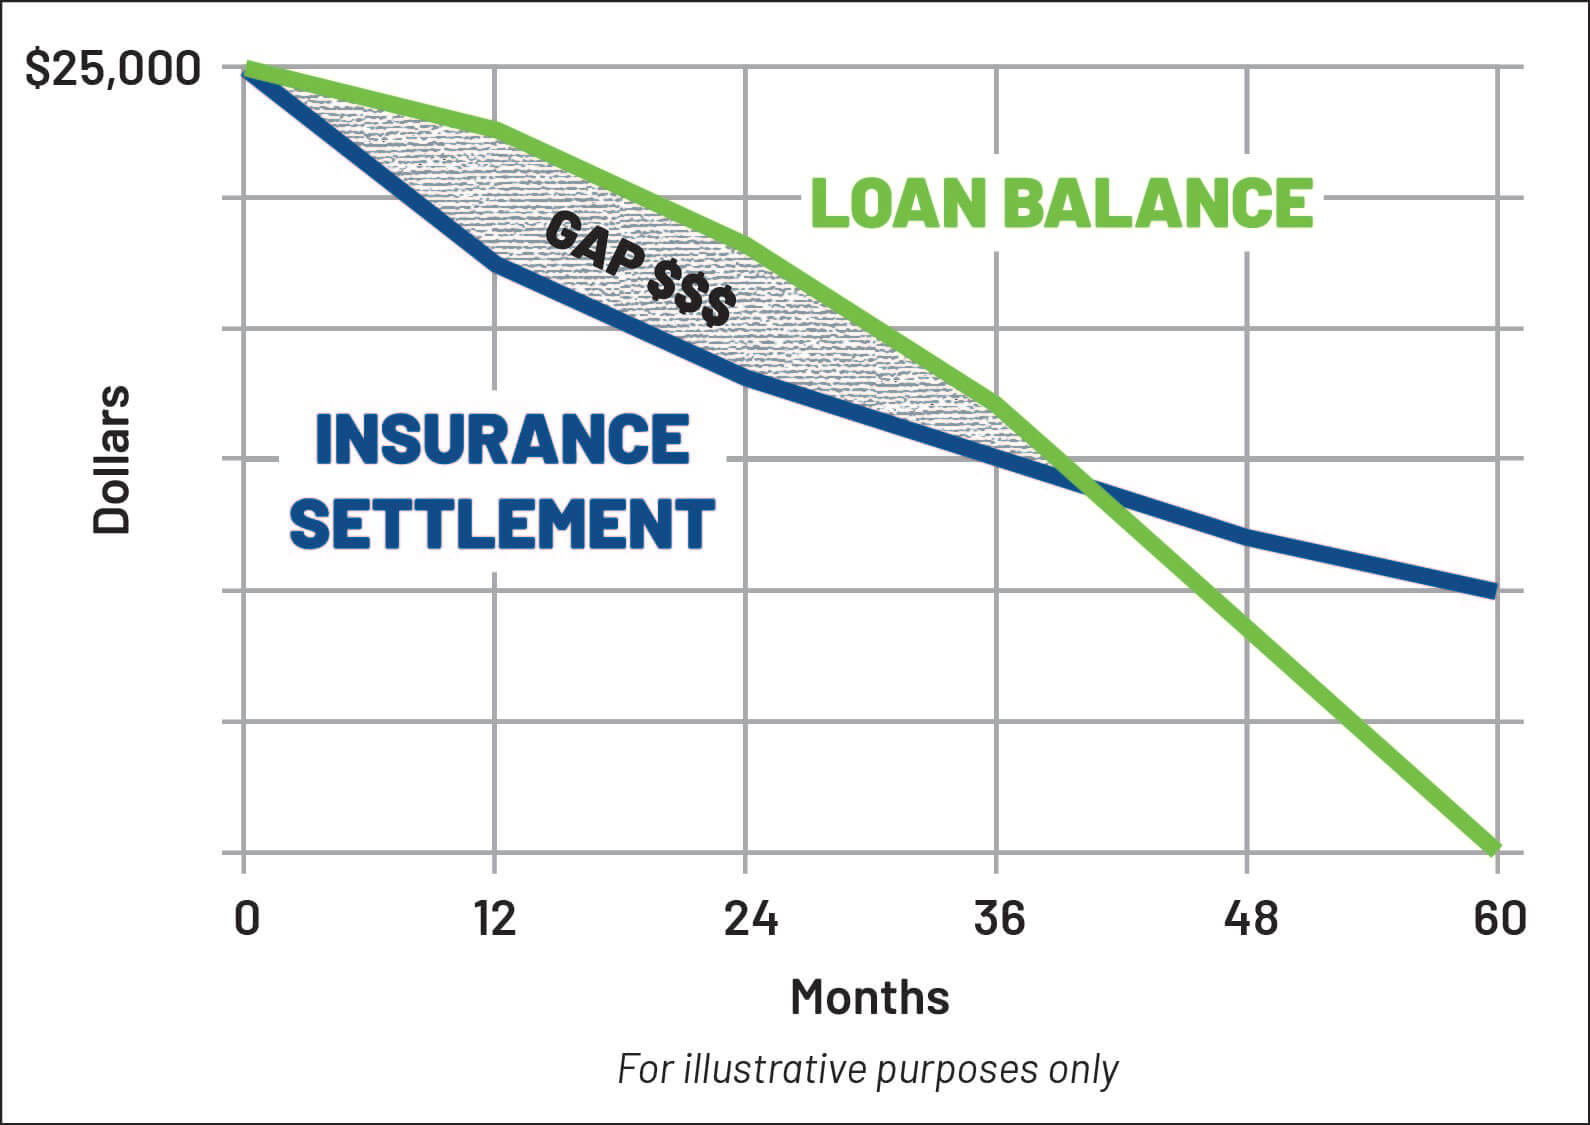 New car depreciation illustration and GAP benefits